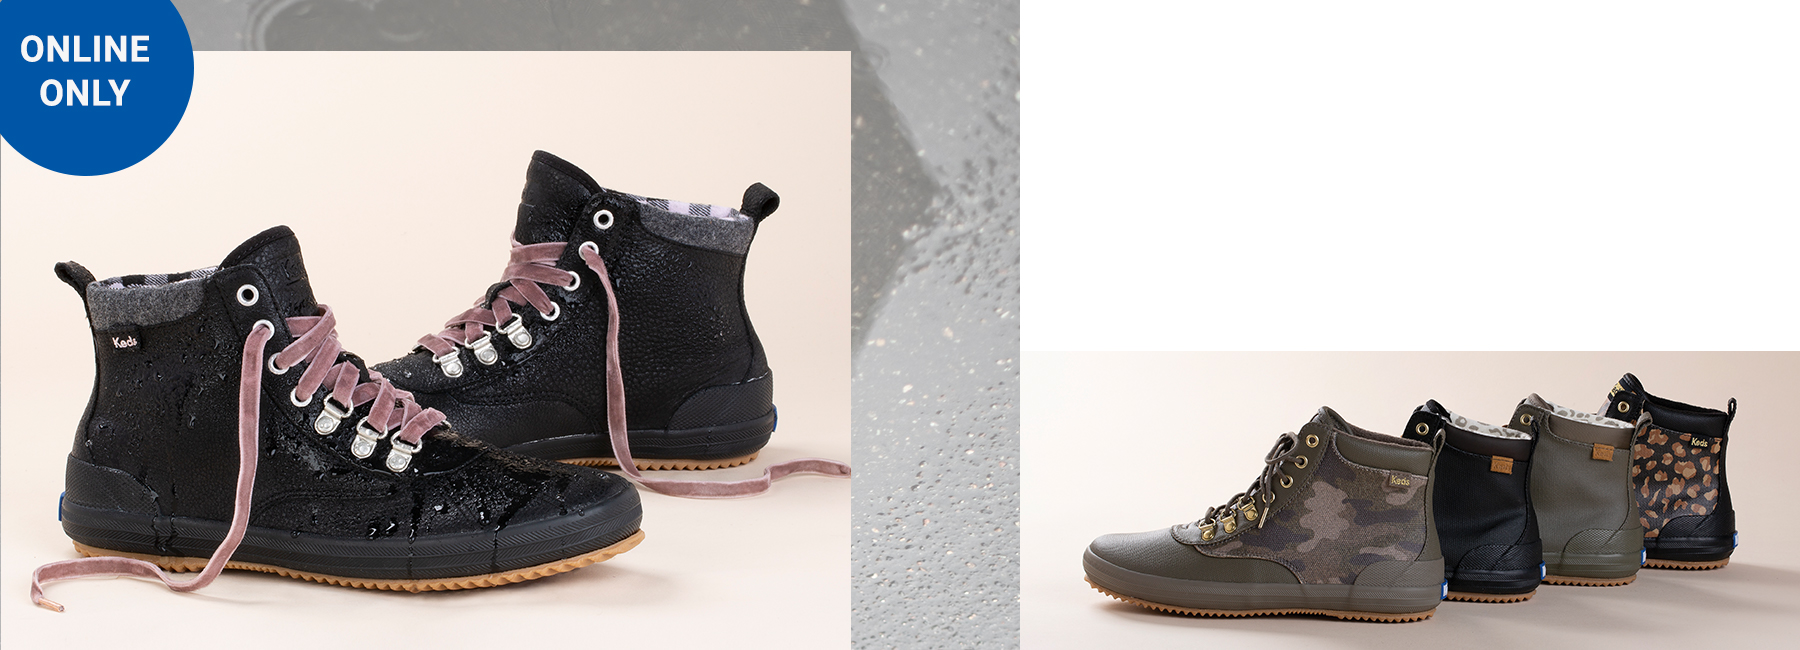 High Top \u0026 Leather Boots for Women   Keds